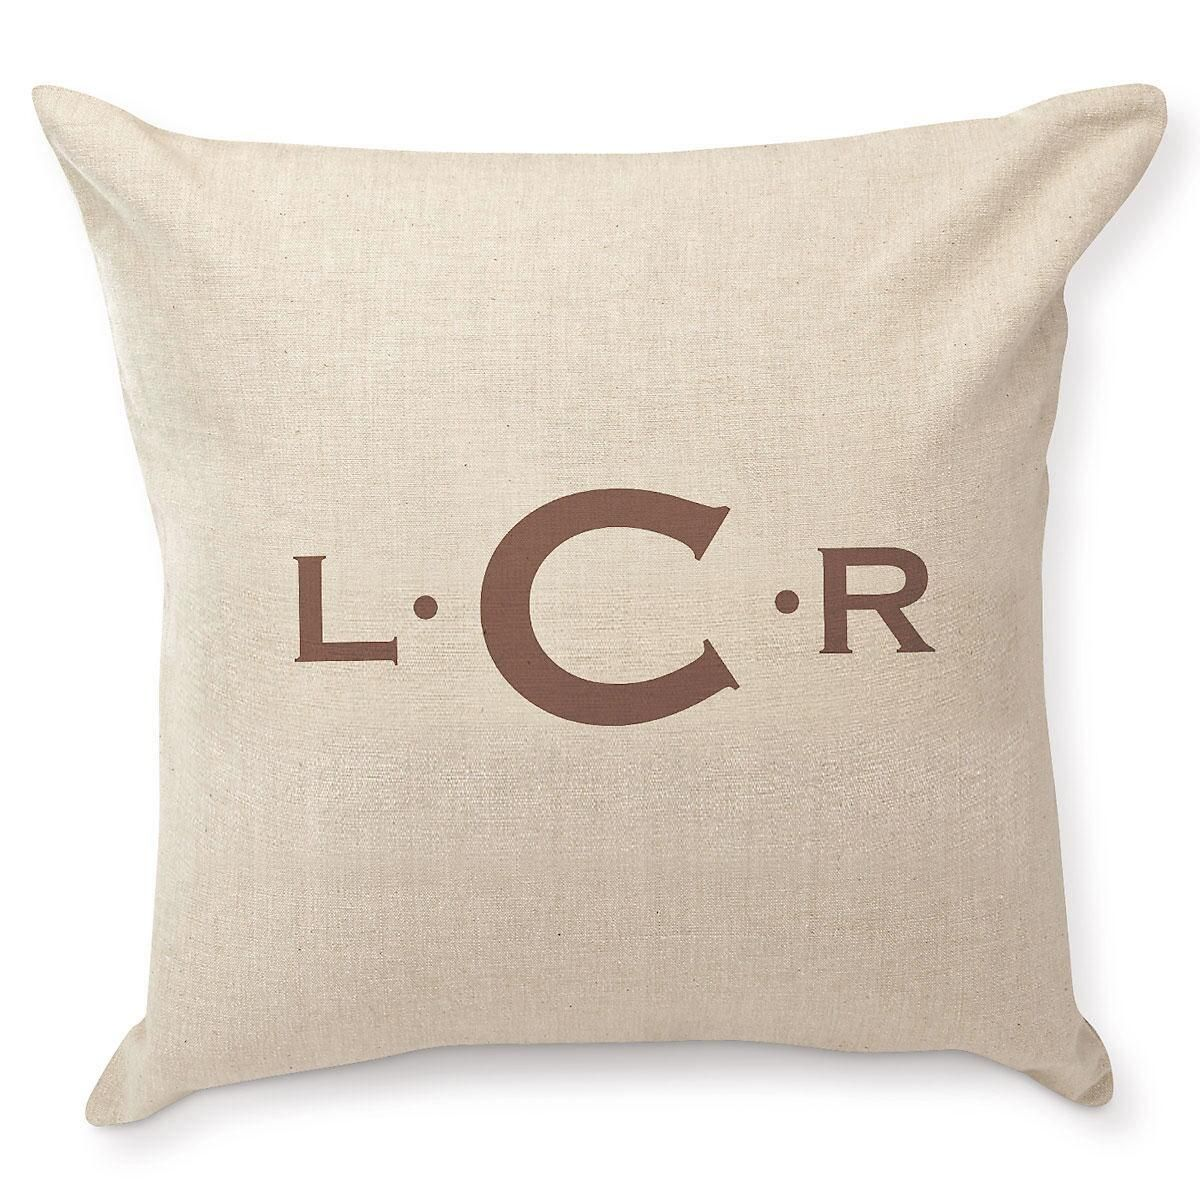 Initials with Dots Pillow